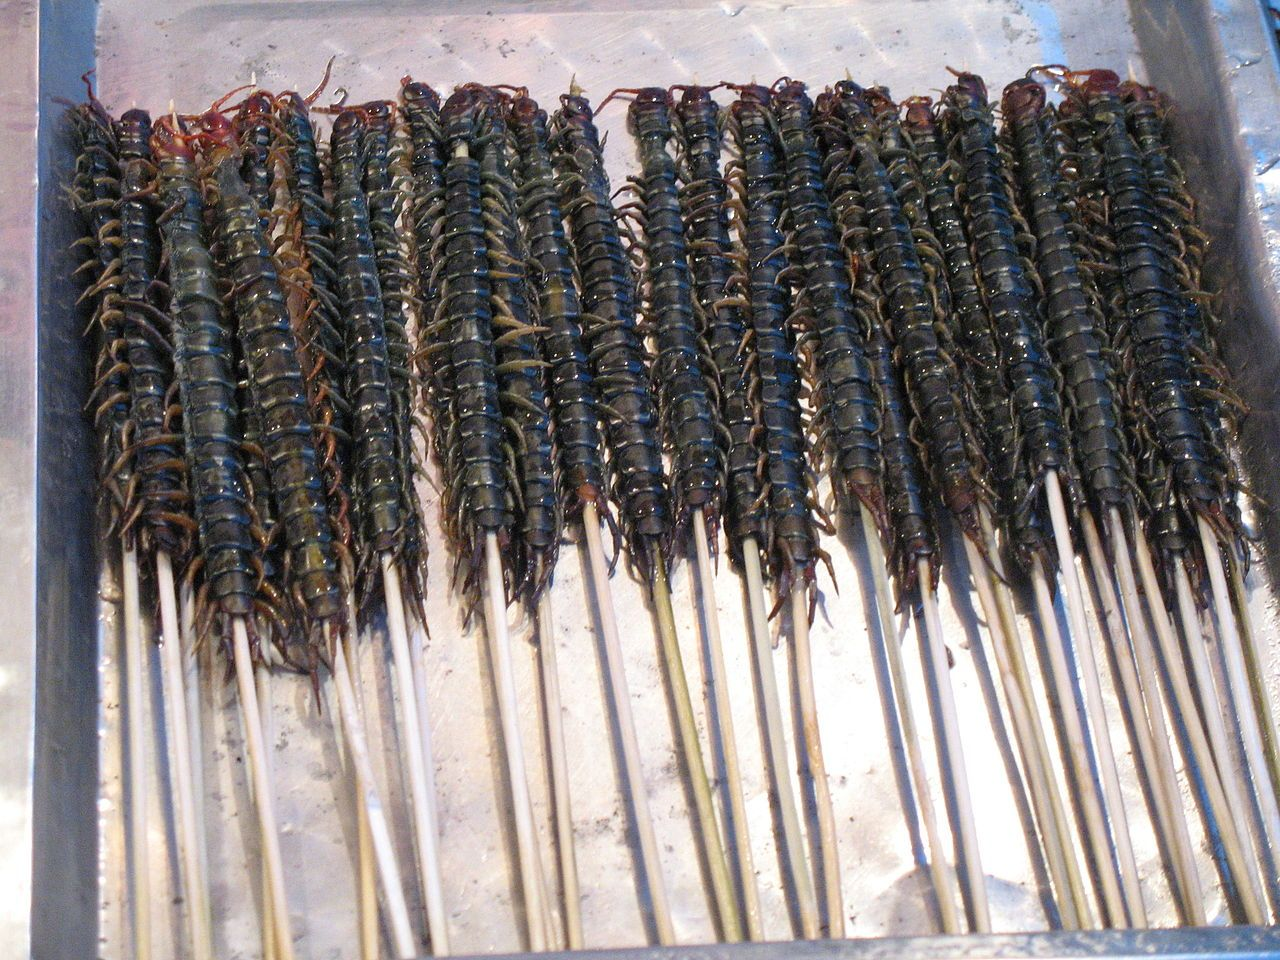 Centipede Edible insects, Edible bugs, Stink bugs